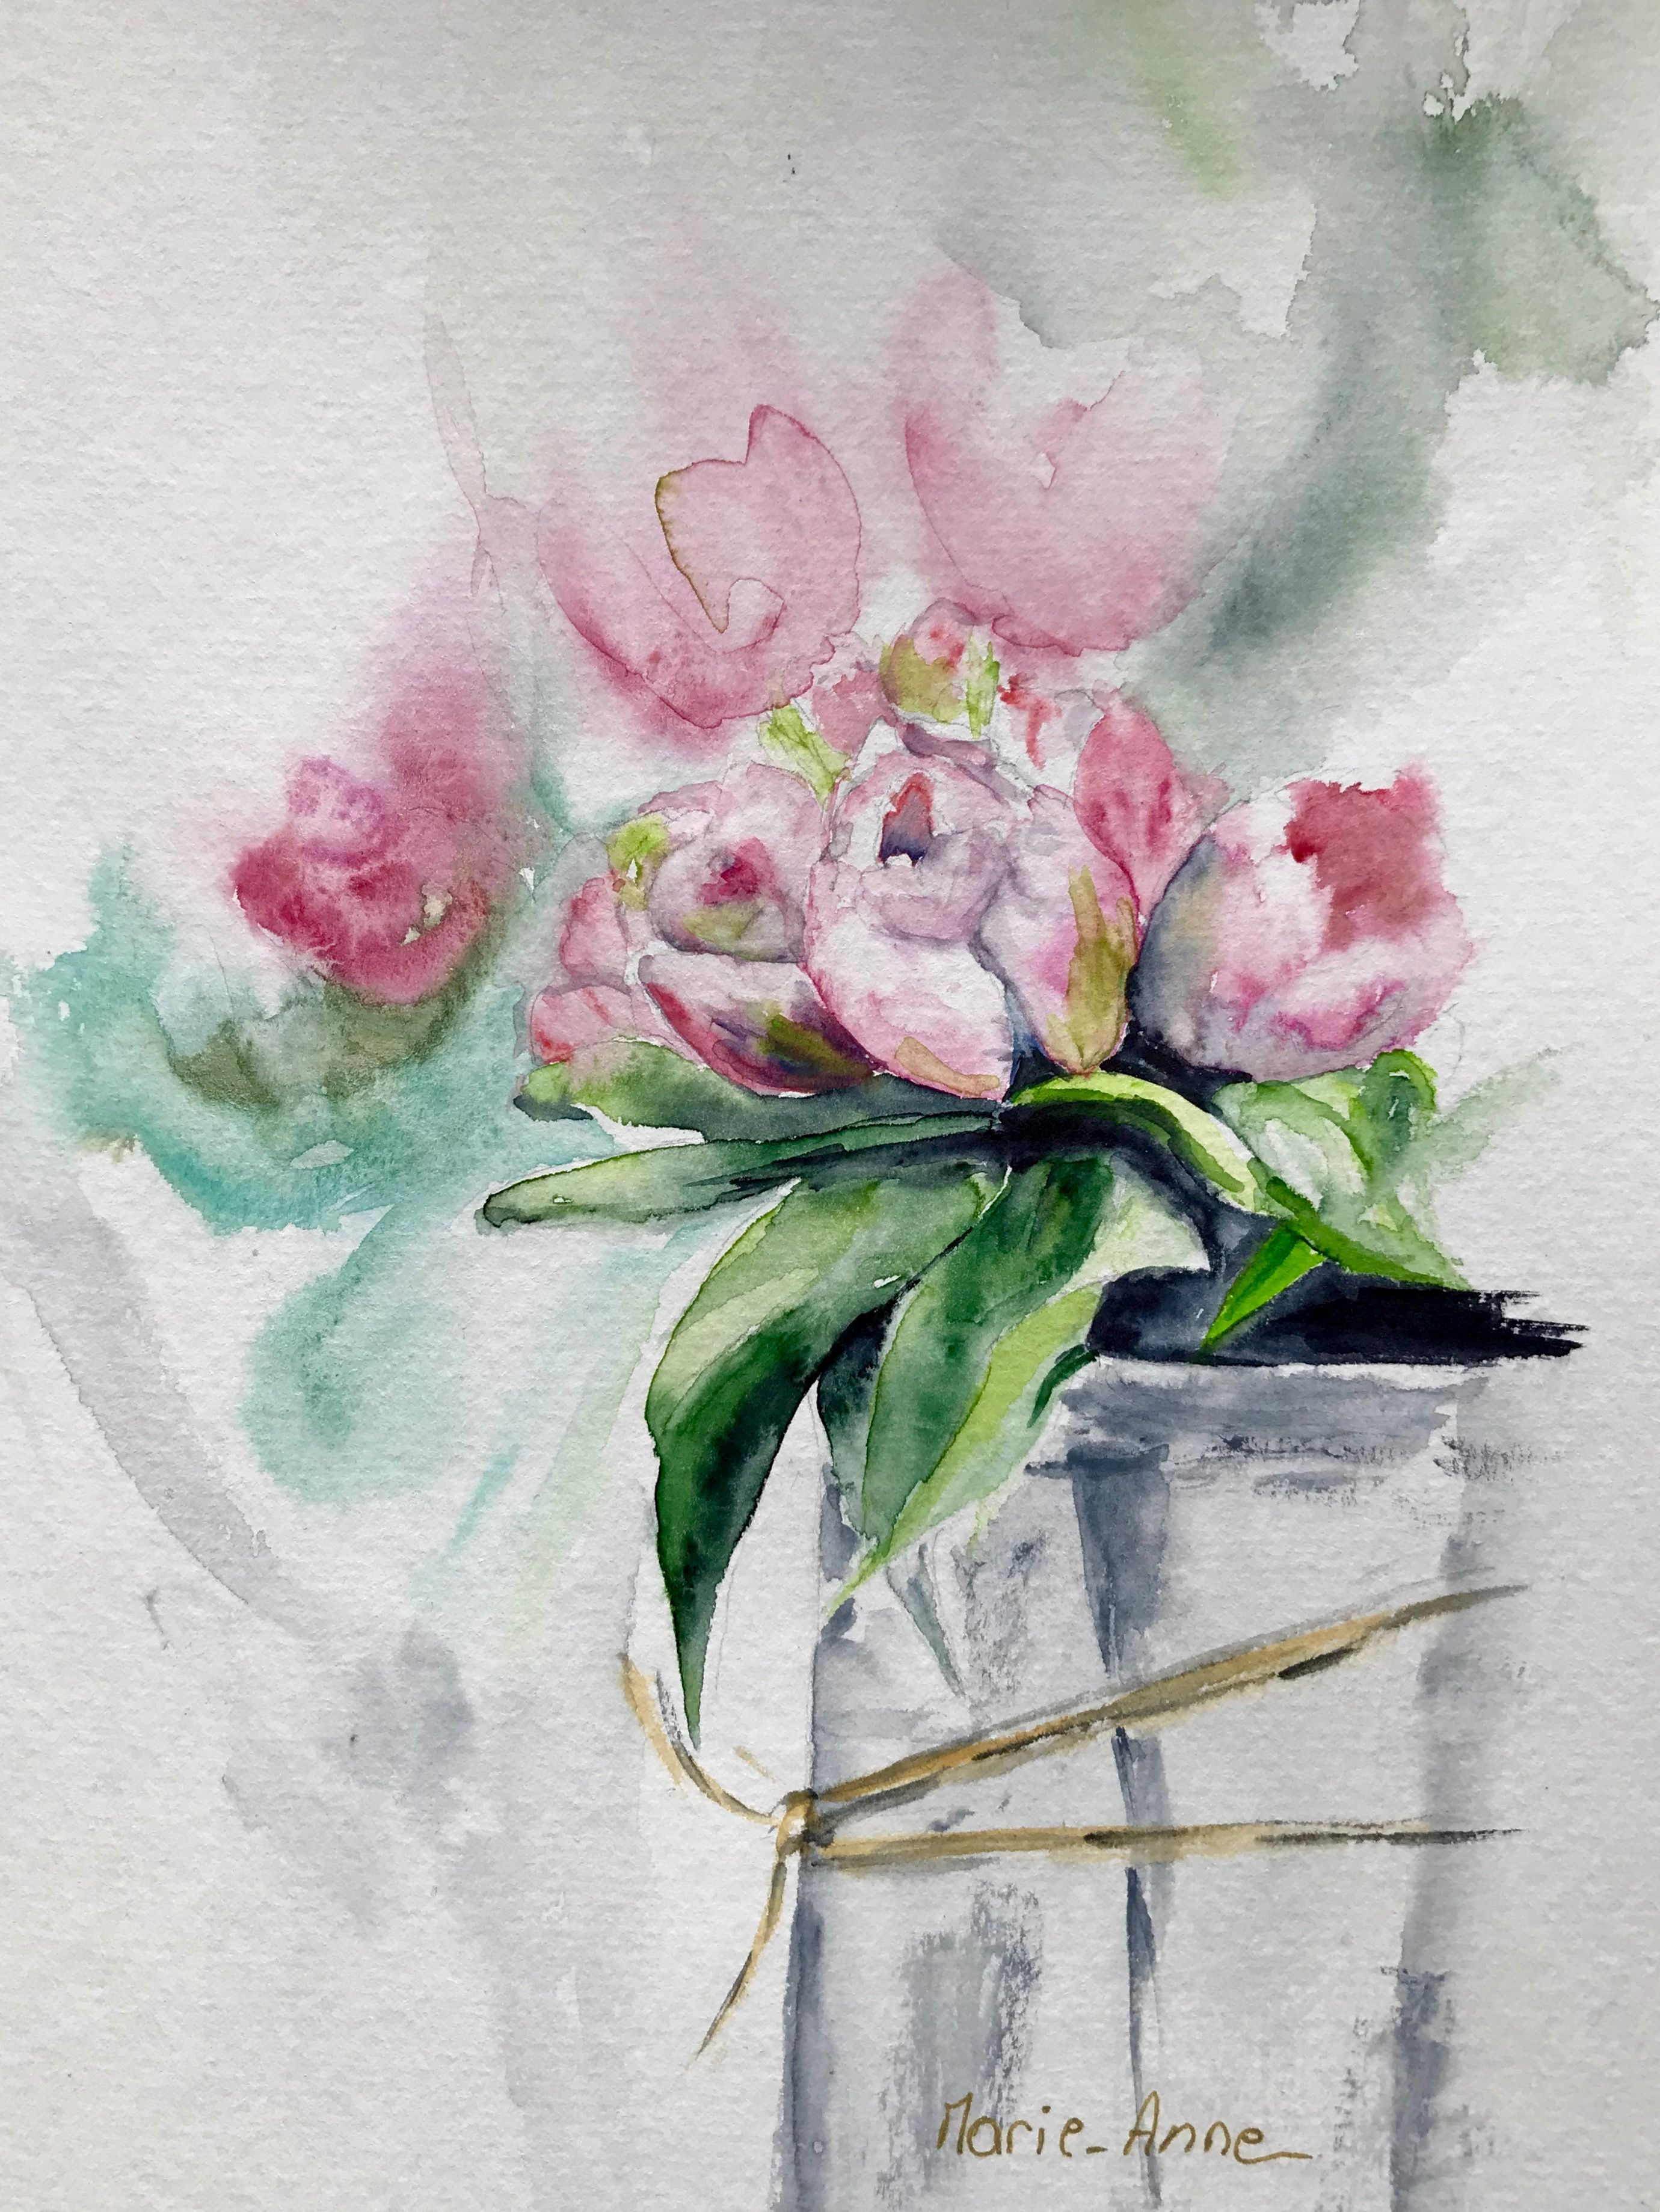 Aquarell Blumen Malen Teil 3 Outlines Youtube